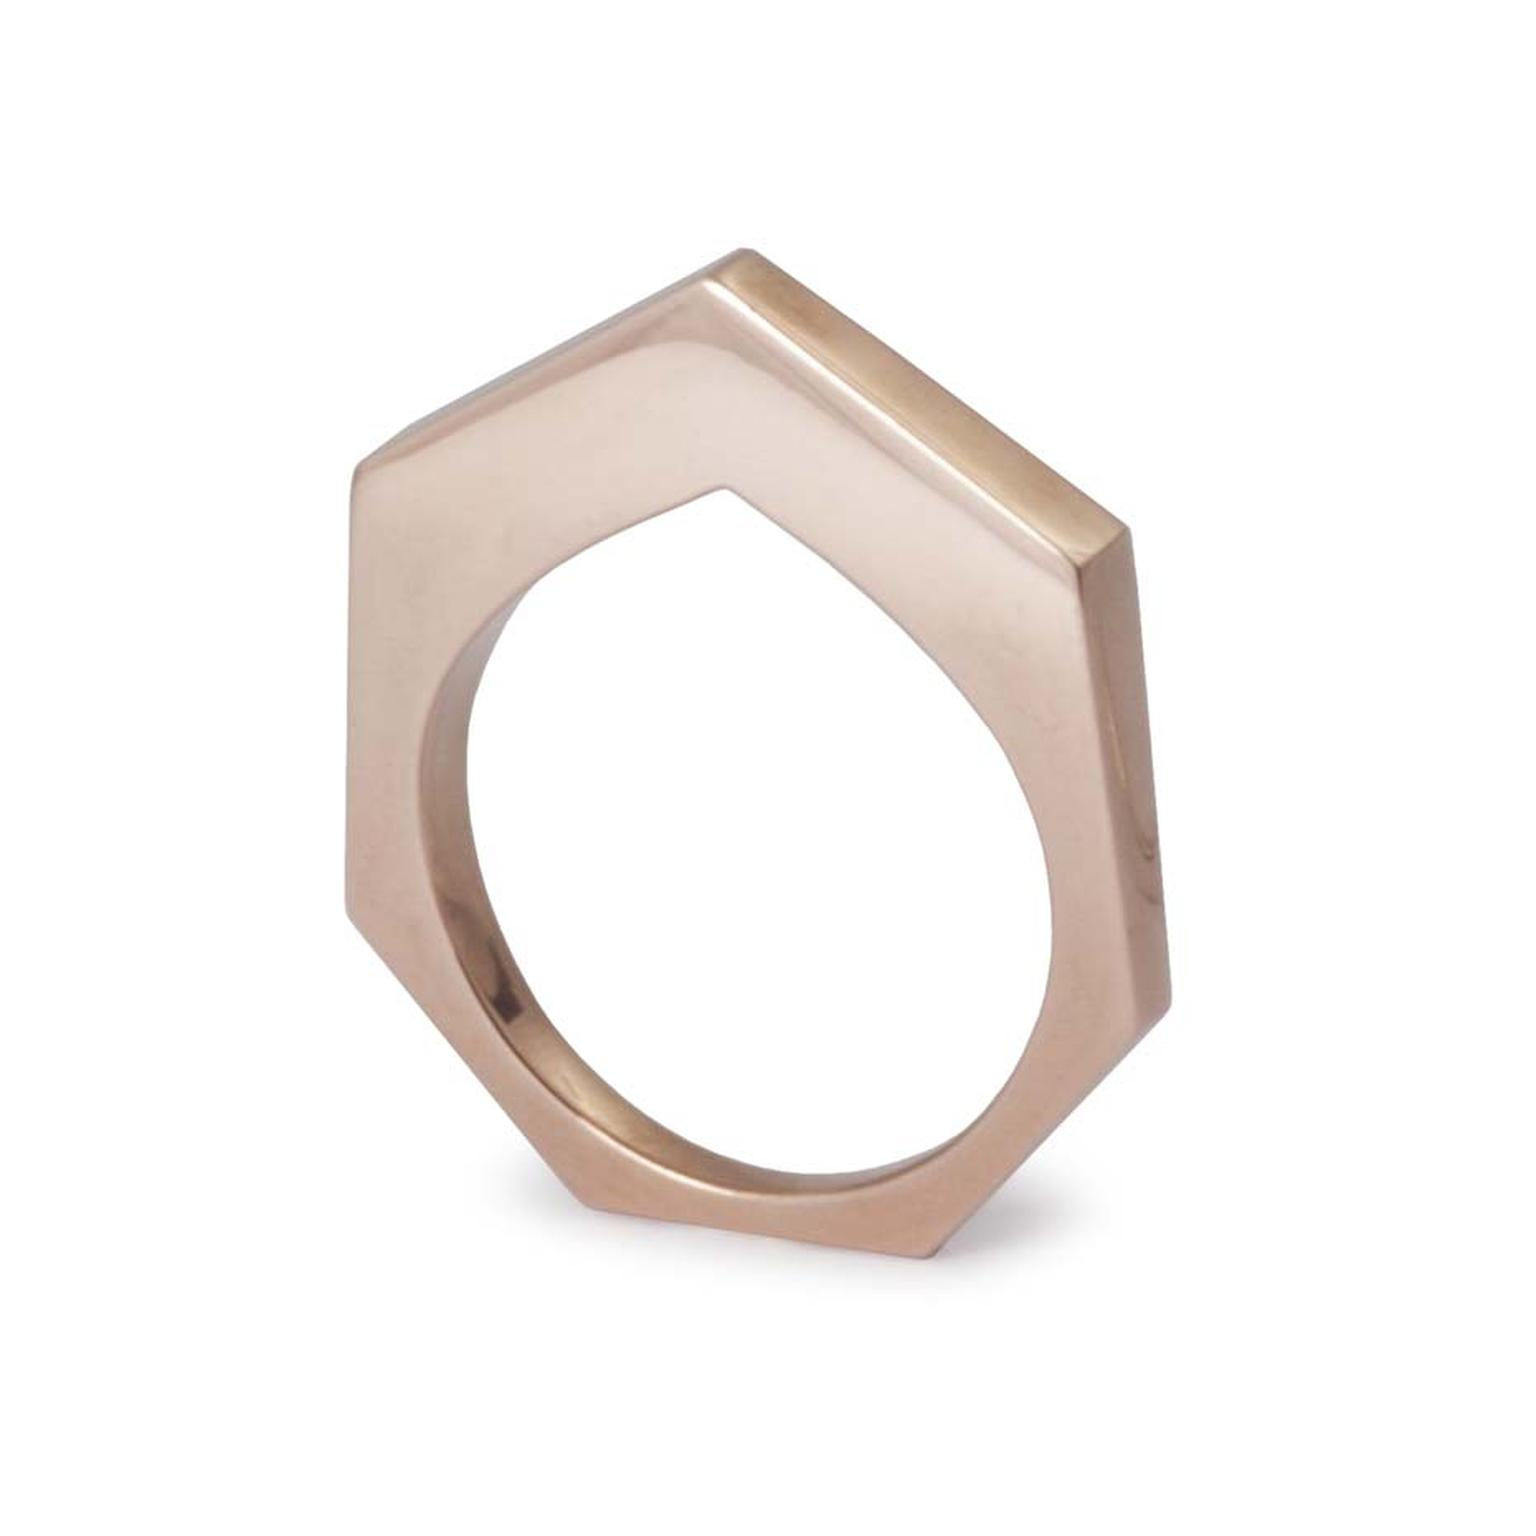 Kattri Polygon Flat rose gold ring (£2,150).